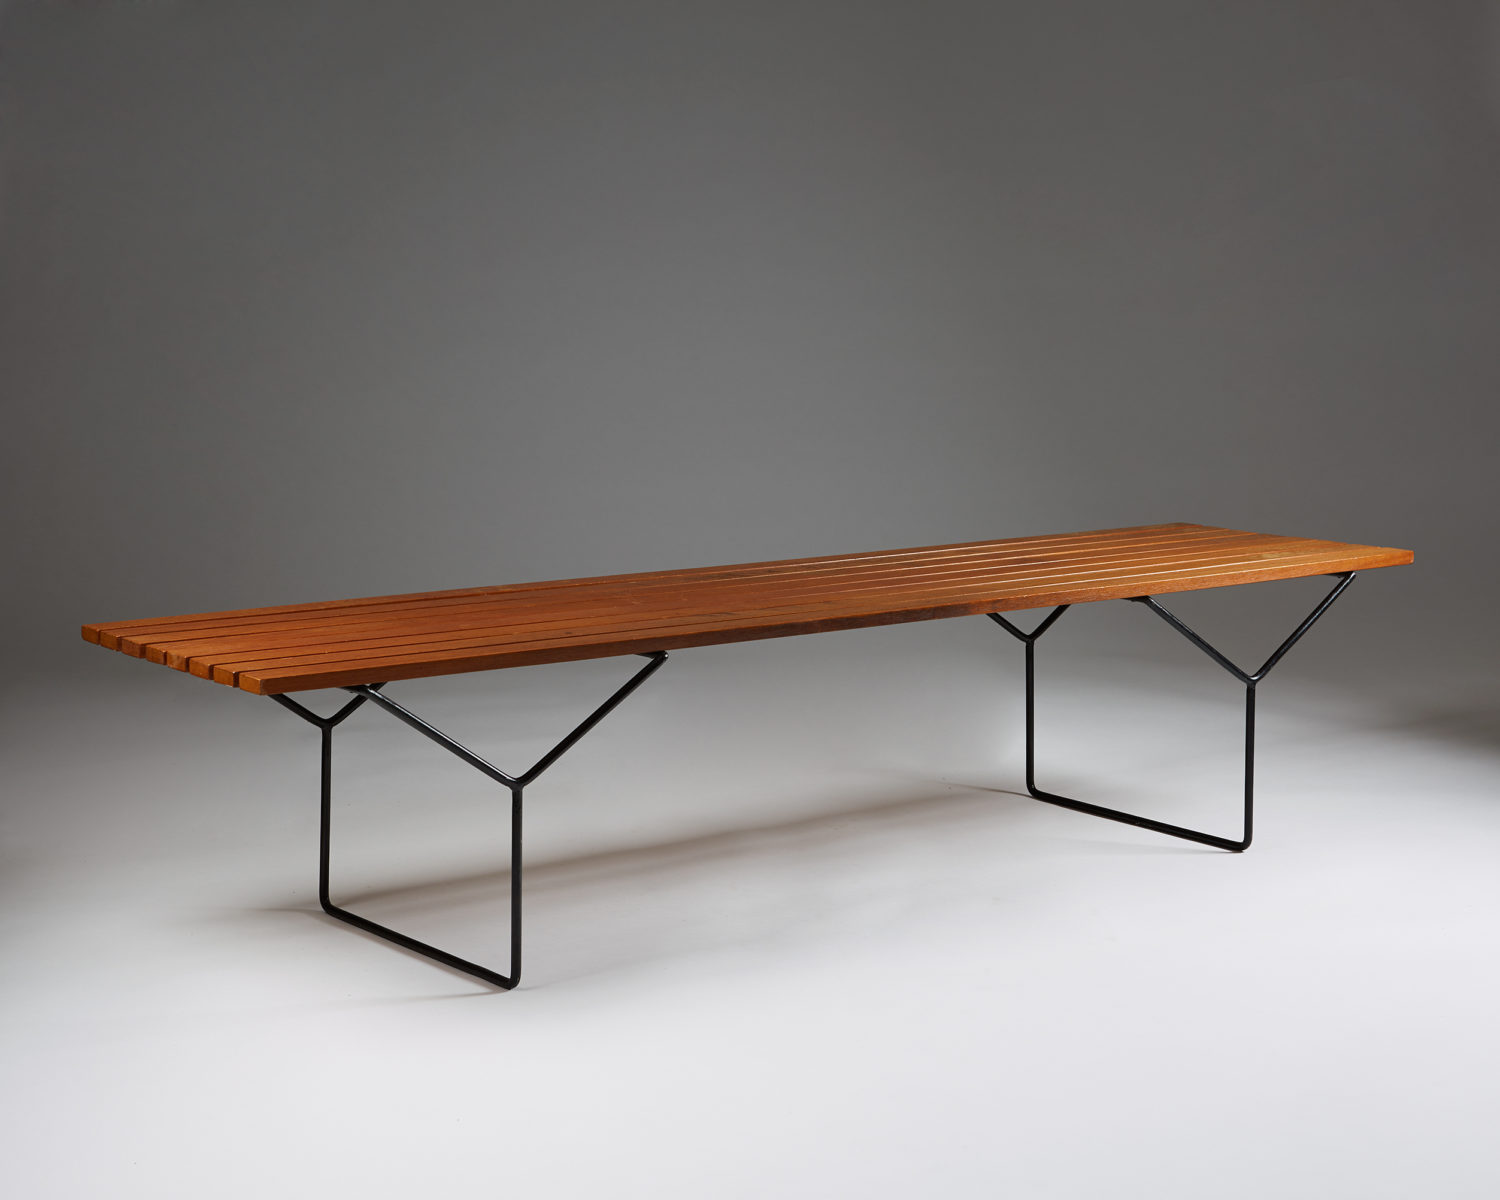 Bench Designed By Harry Bertoia For Knoll International Modernity